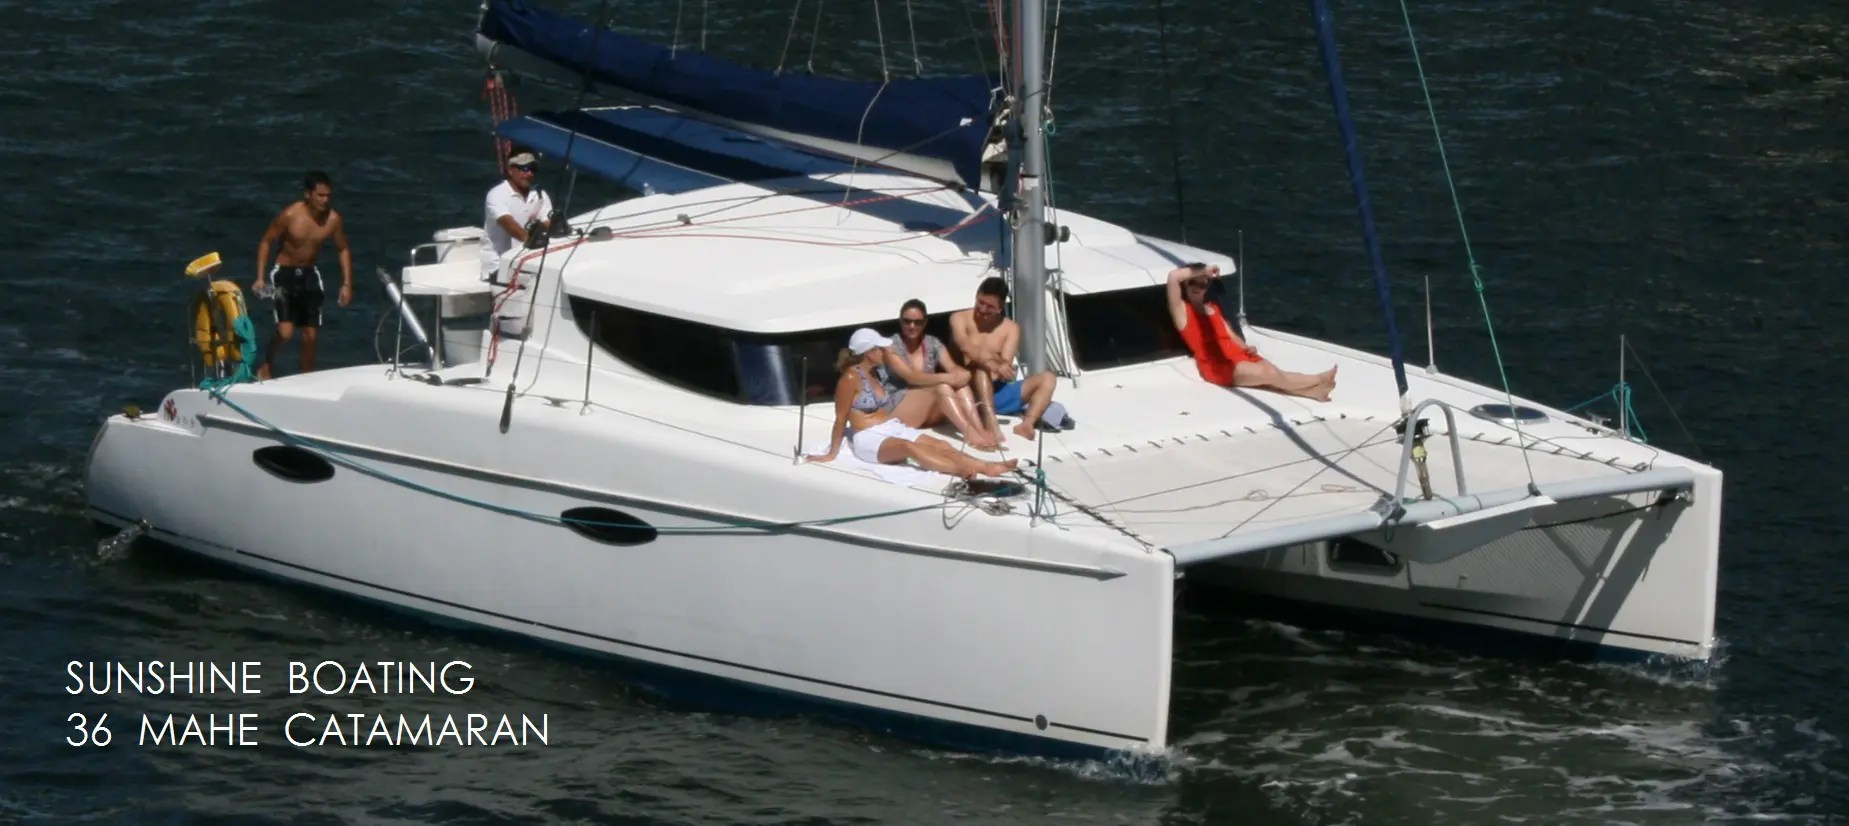 Catamaran Rental In Miami Amp Fort Lauderdale FL Sunshine